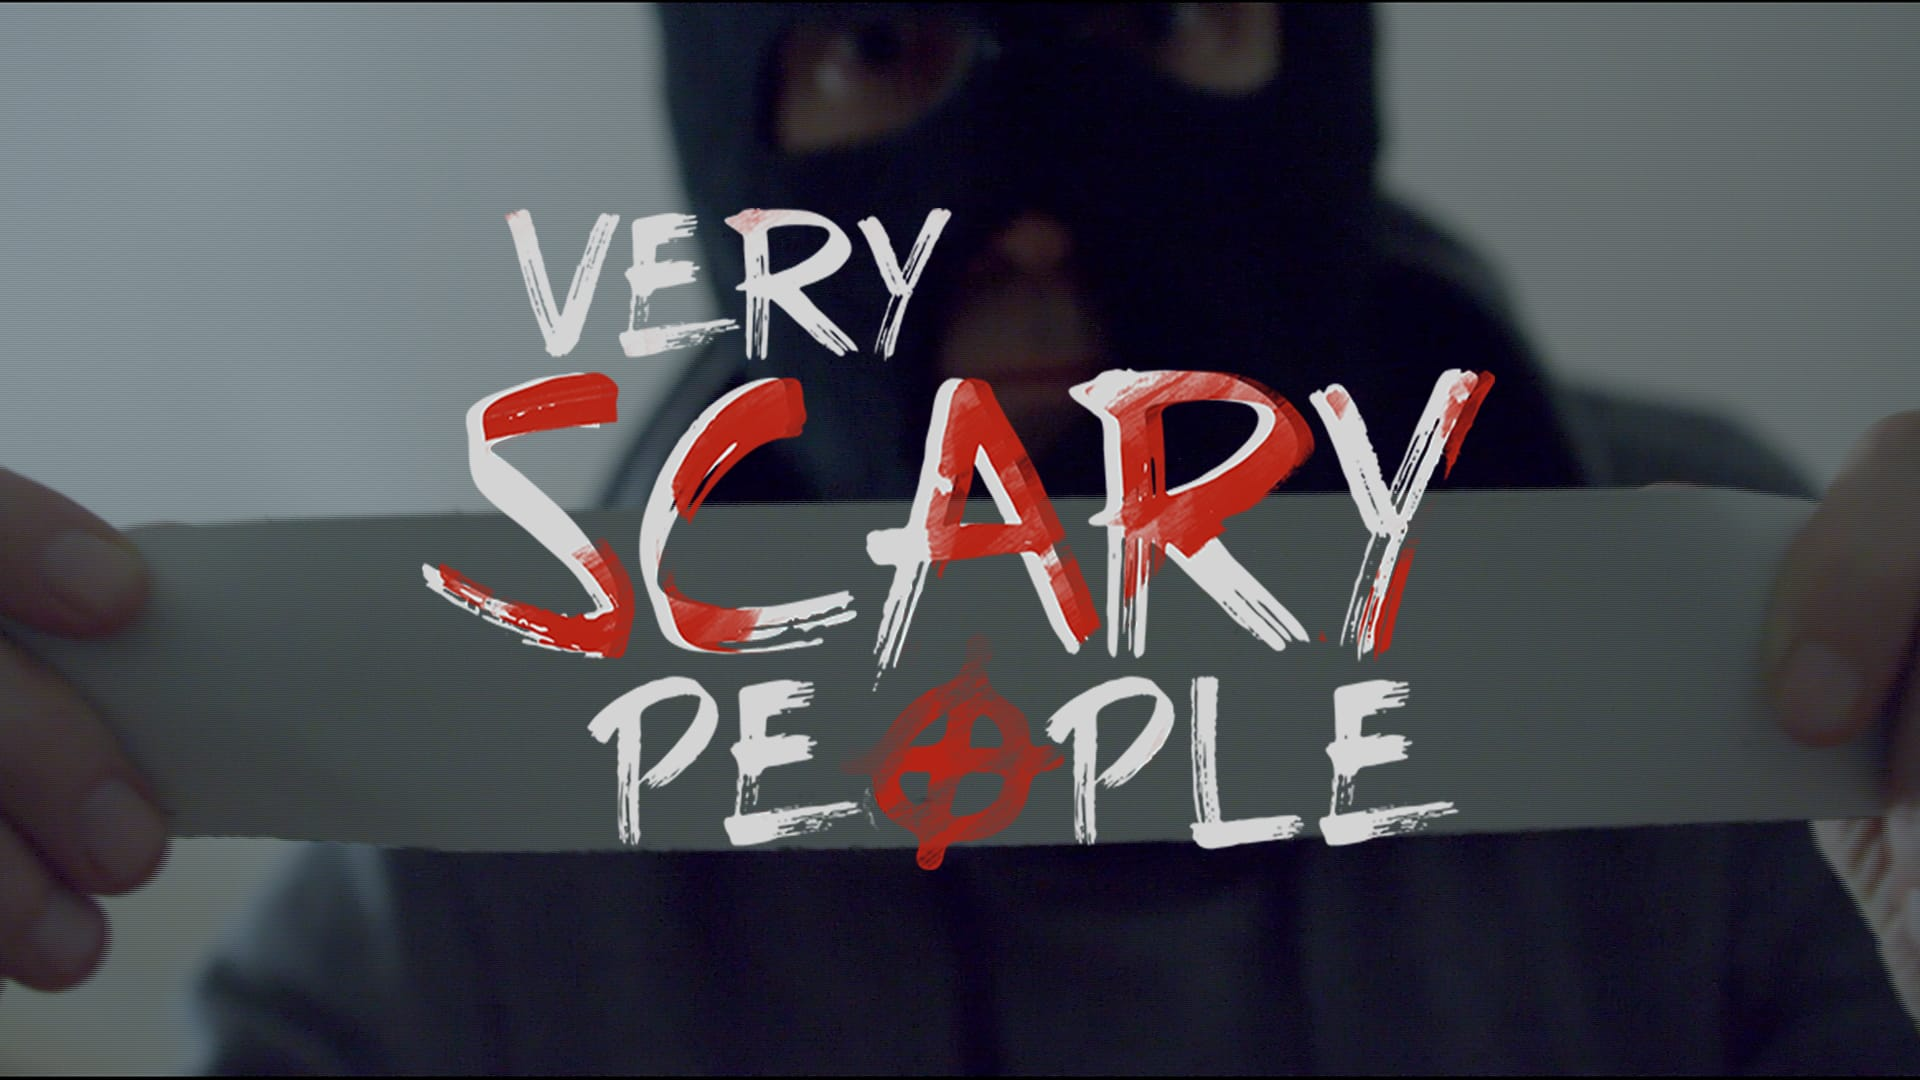 Very Scary People | CNN Creative Marketing